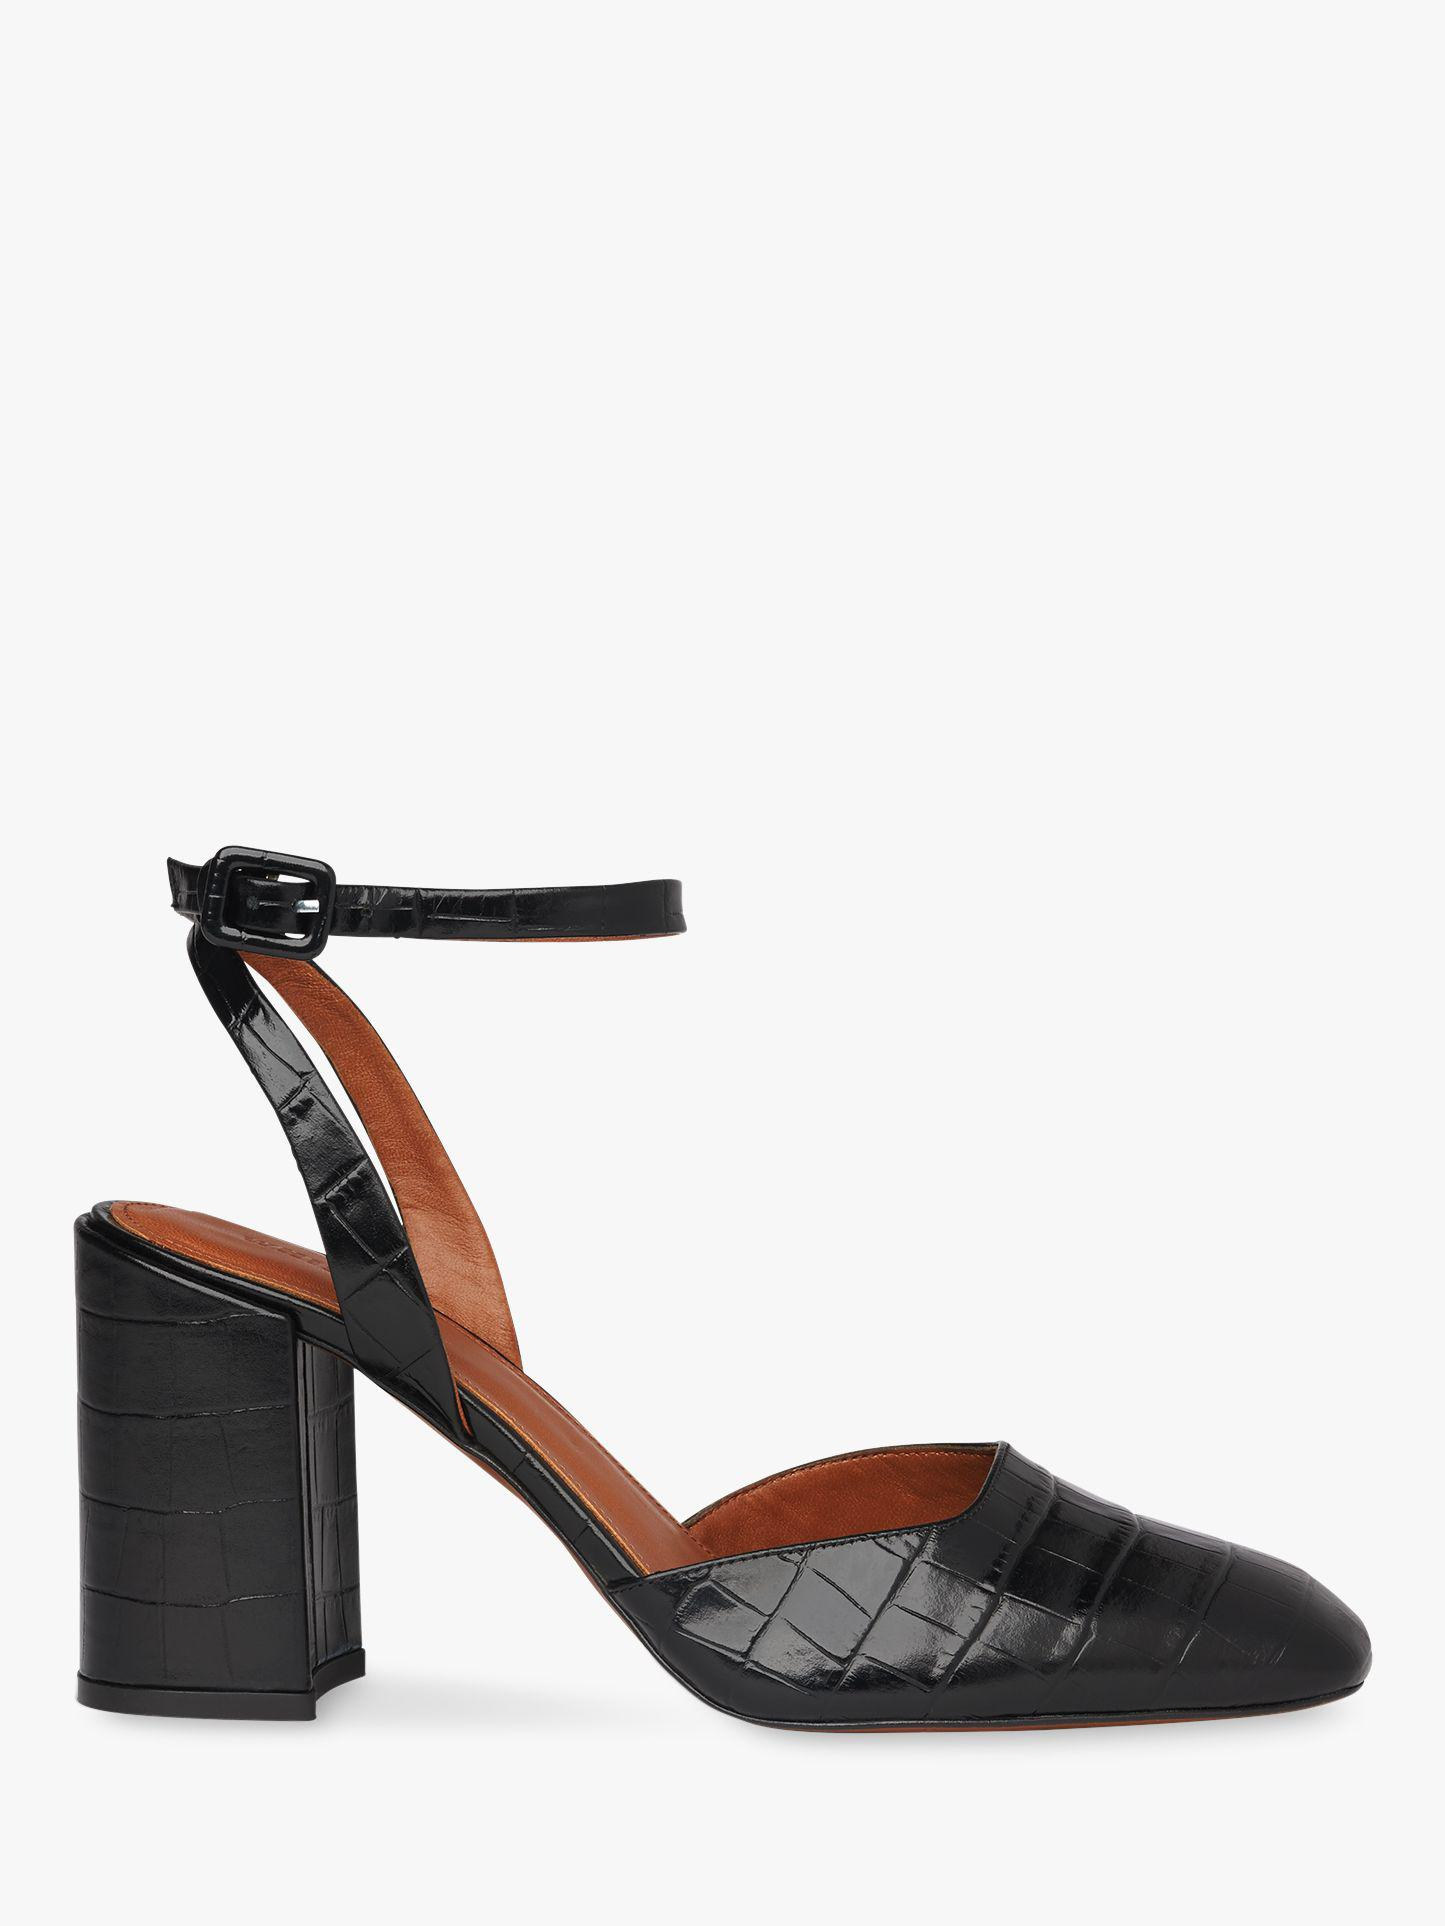 dc45e47c3dde Whistles. Women s Black Crescent High Block Heel Sandals. £159 £95 From John  Lewis and Partners